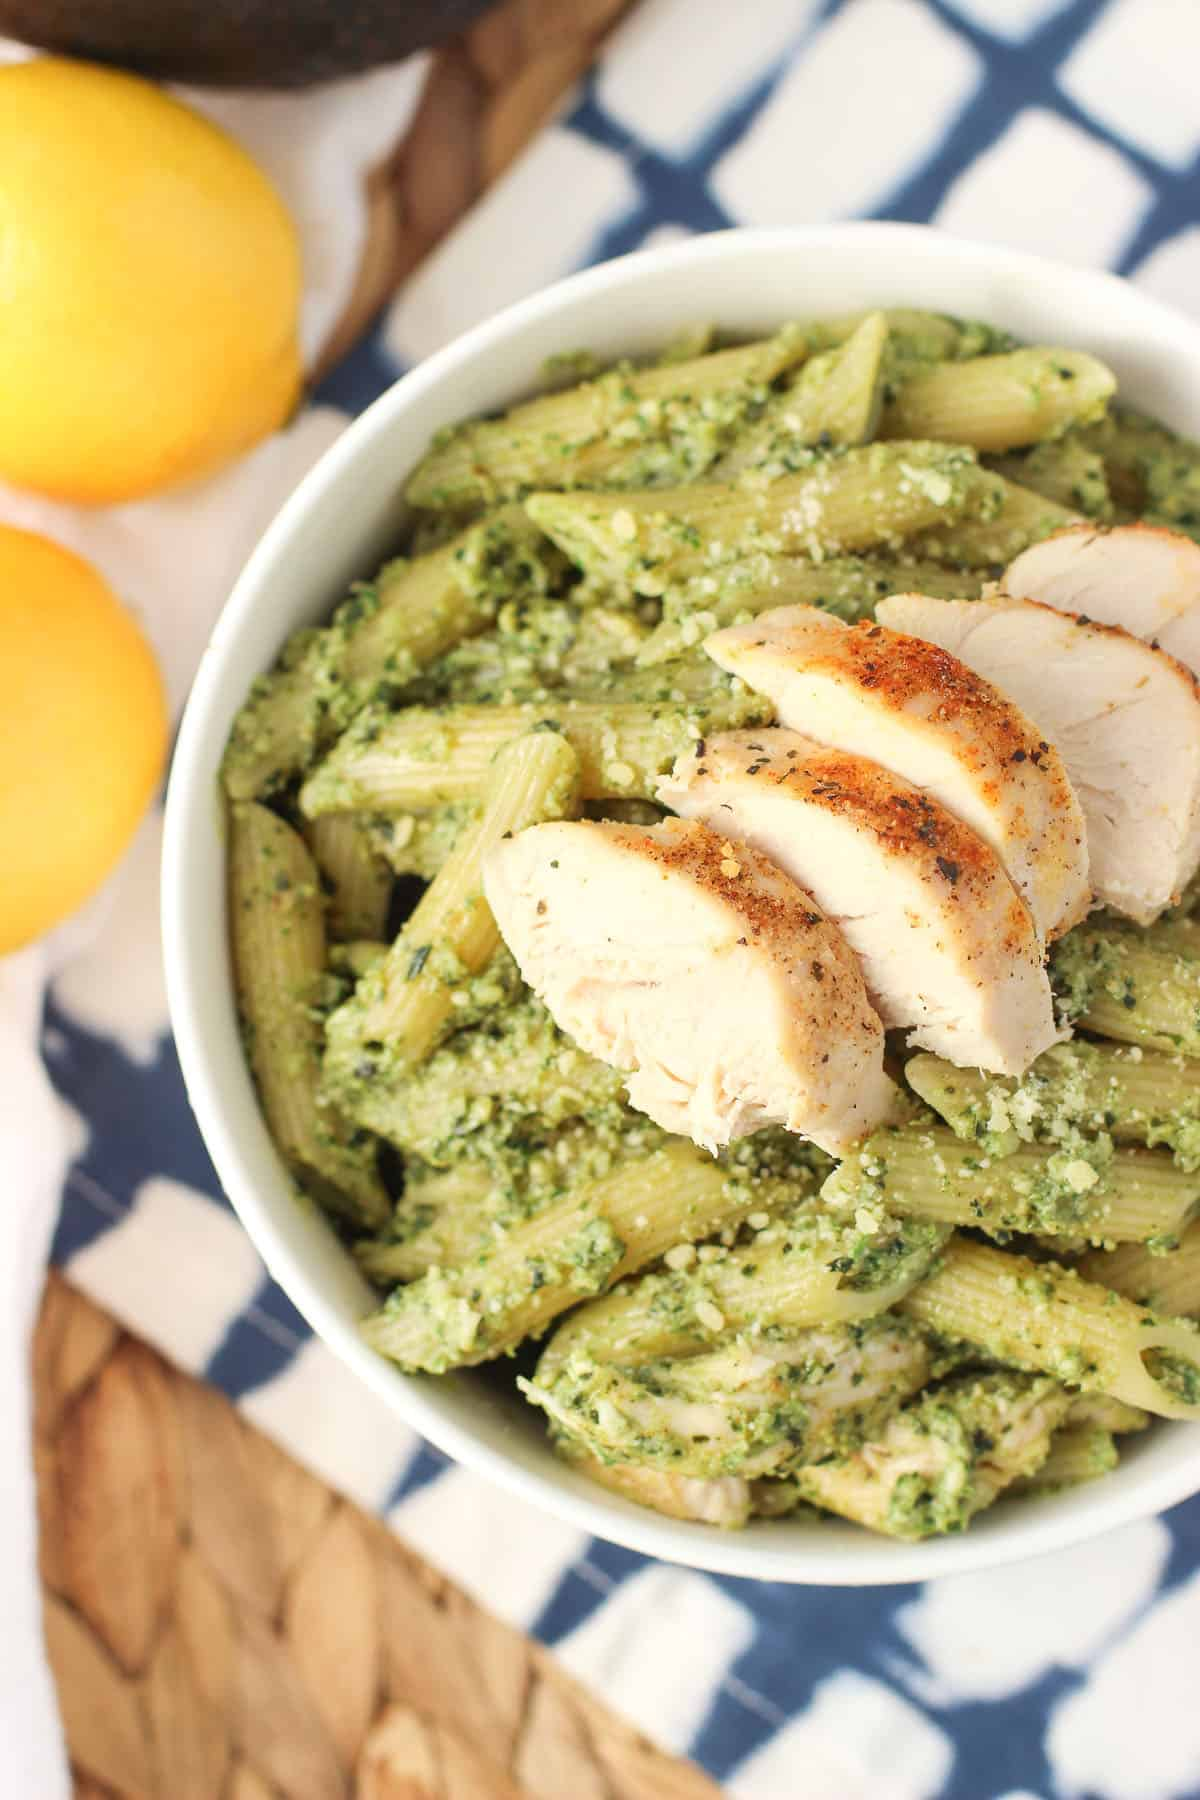 A bowl of pesto pasta with cooked chicken on top.